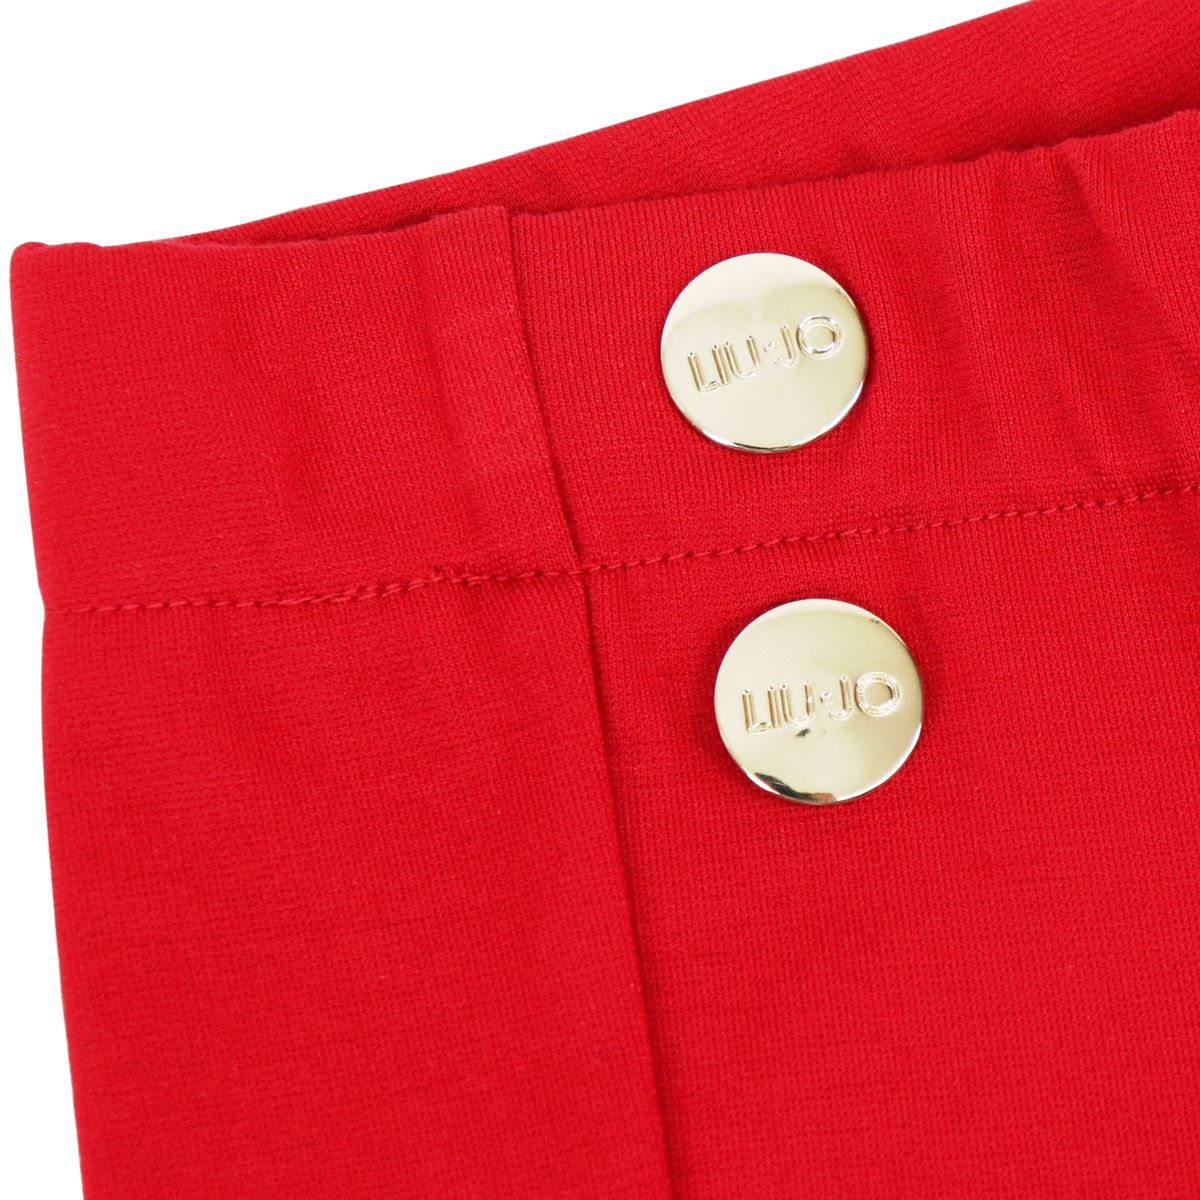 Milano stitch jersey trousers with metal buttons Red Liu Jo